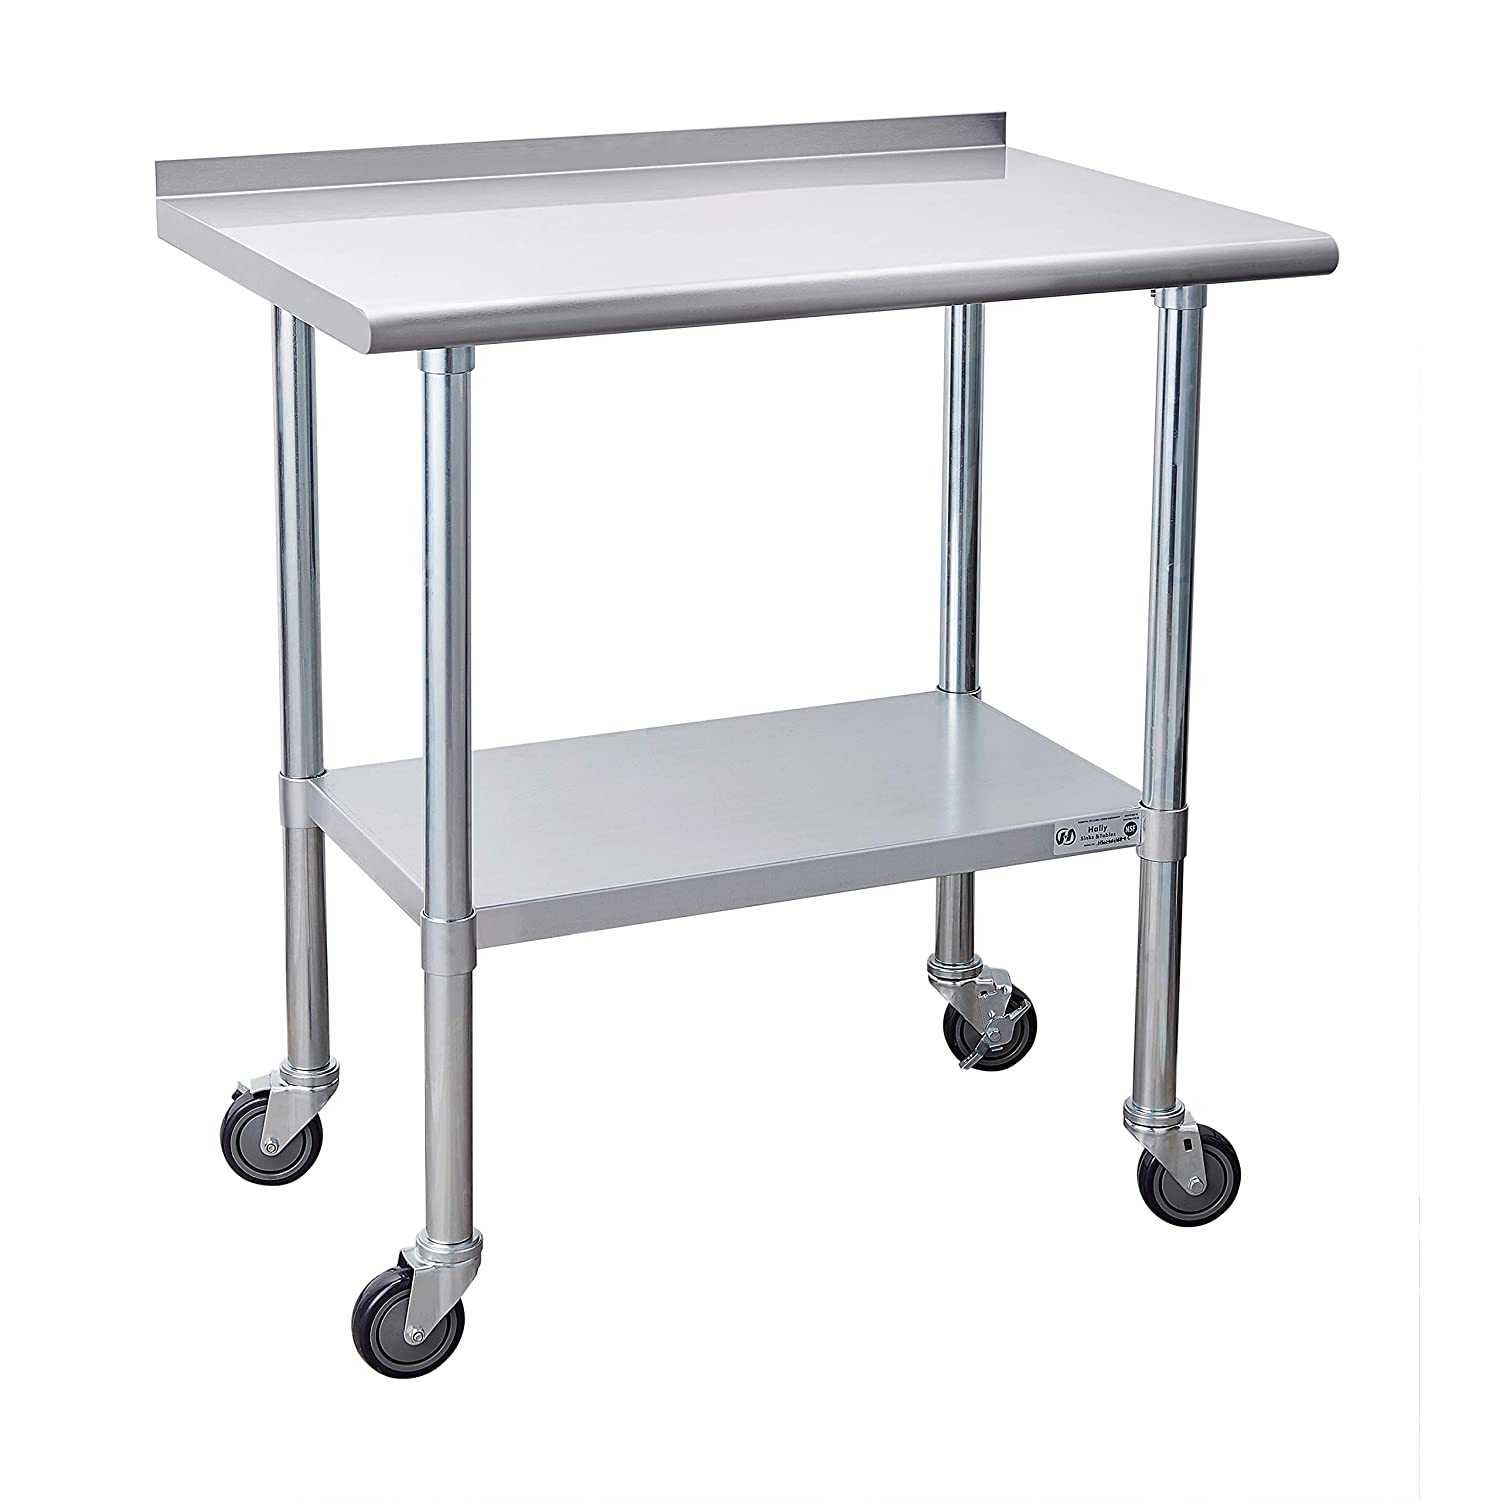 Stainless Steel Today's only Table Limited price for Prep Work Inches x Caster 36 24 with